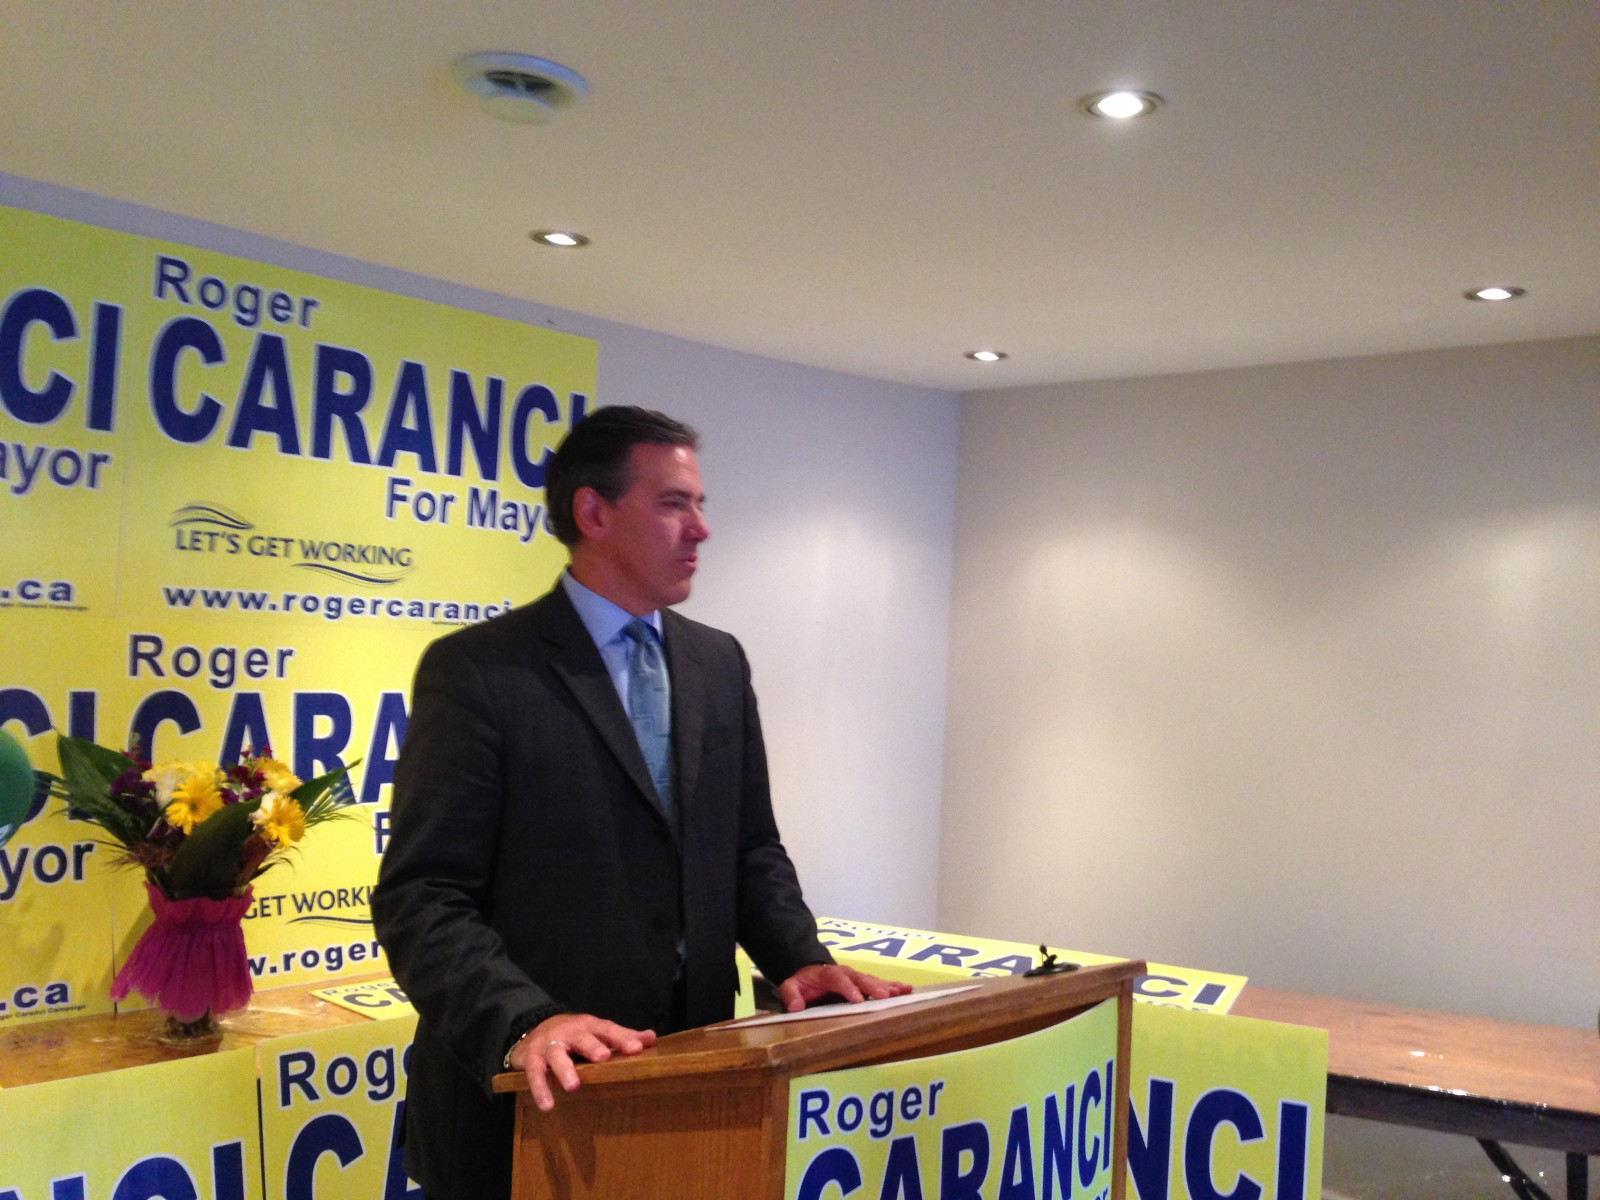 Caranci wants to review city assets and what it funds